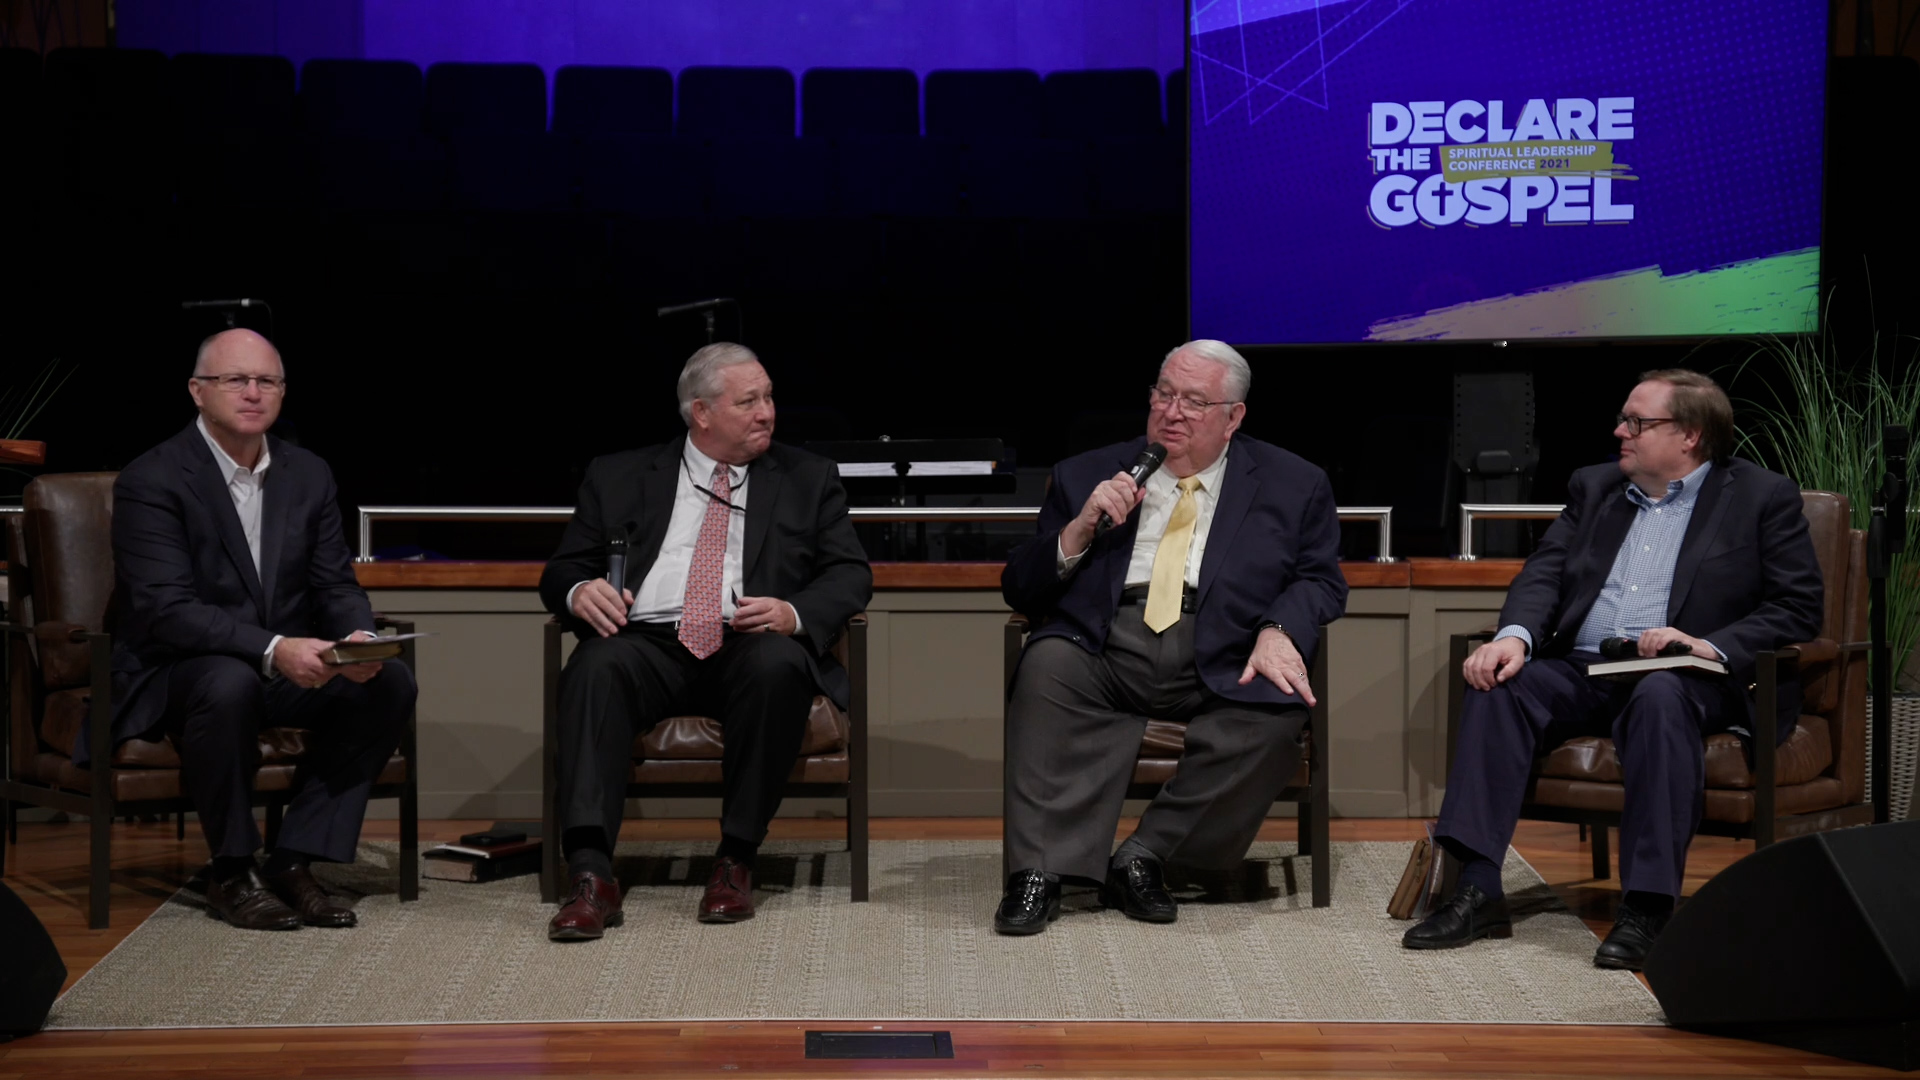 Pastor Paul Chappell: Religious Liberty Panel Discussion